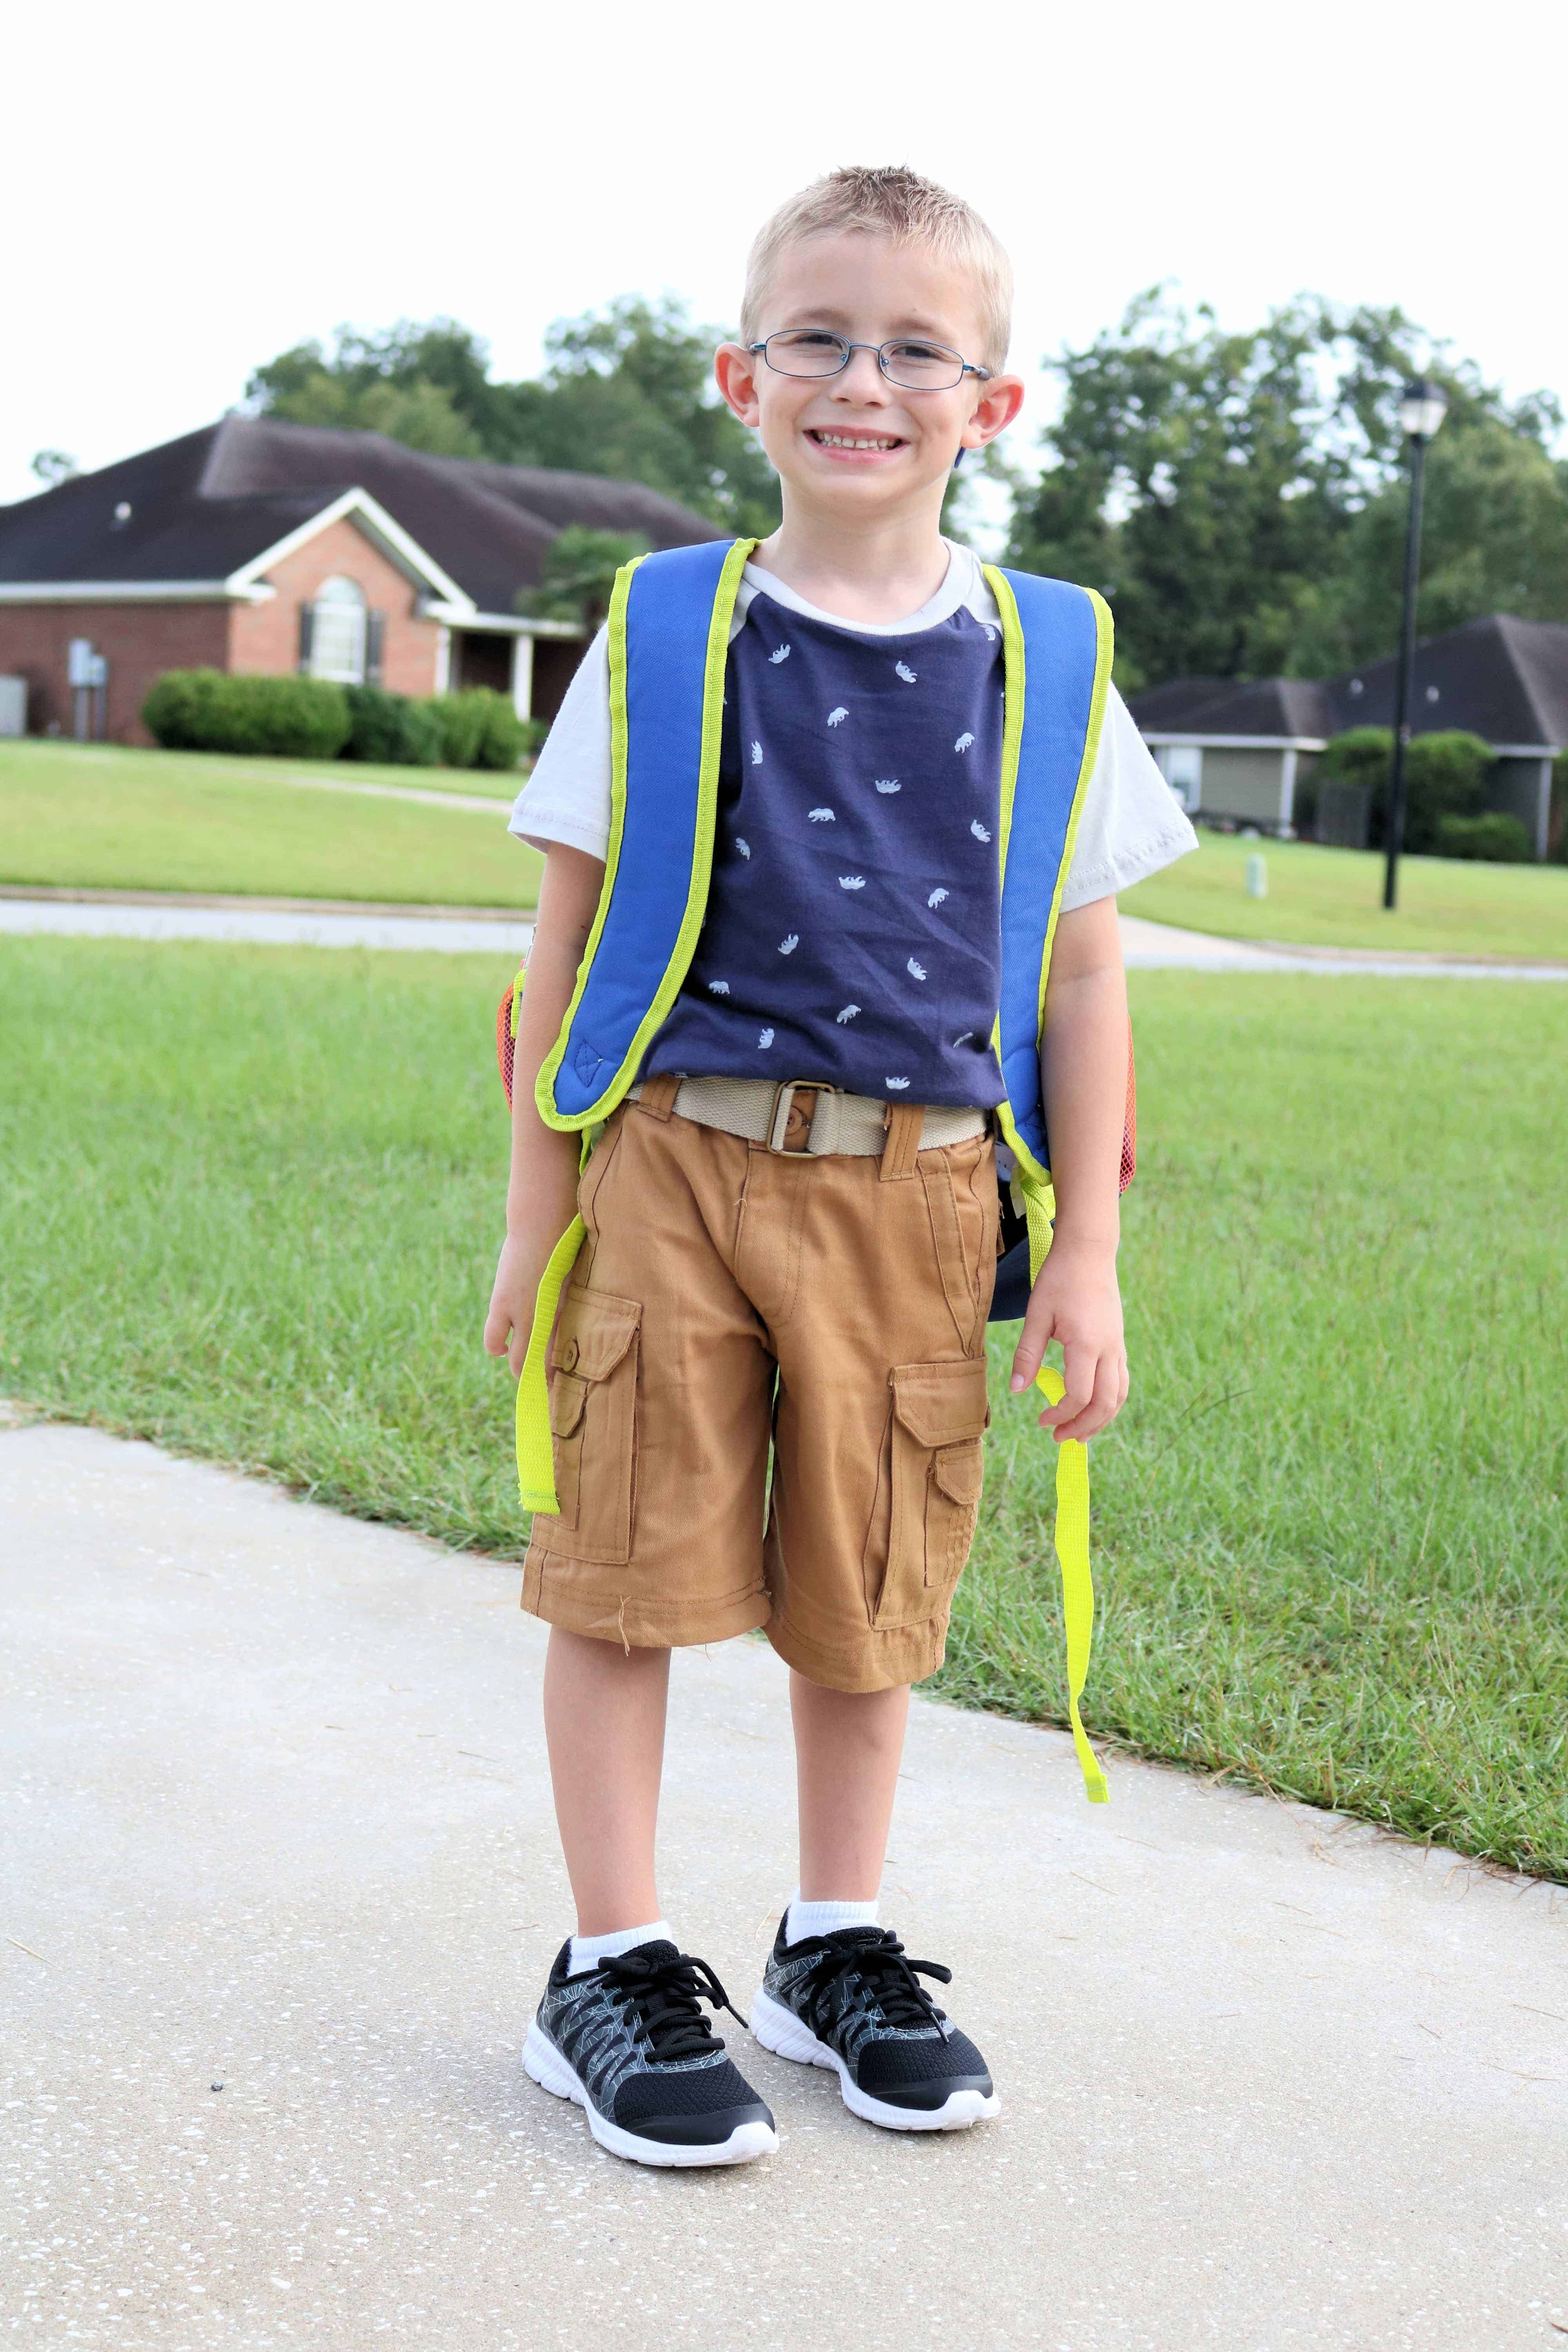 Looking for ways to save on back to school clothes shopping? Then check out my post on how I stay under budget and find everything my kids need for back to school by shopping at Bealls Outlet. Plus check out the cute first day of school outfits and backpacks my kids will be rocking this school year! #ad #BeallsOutlet #backtoschool #budgeting #shopping